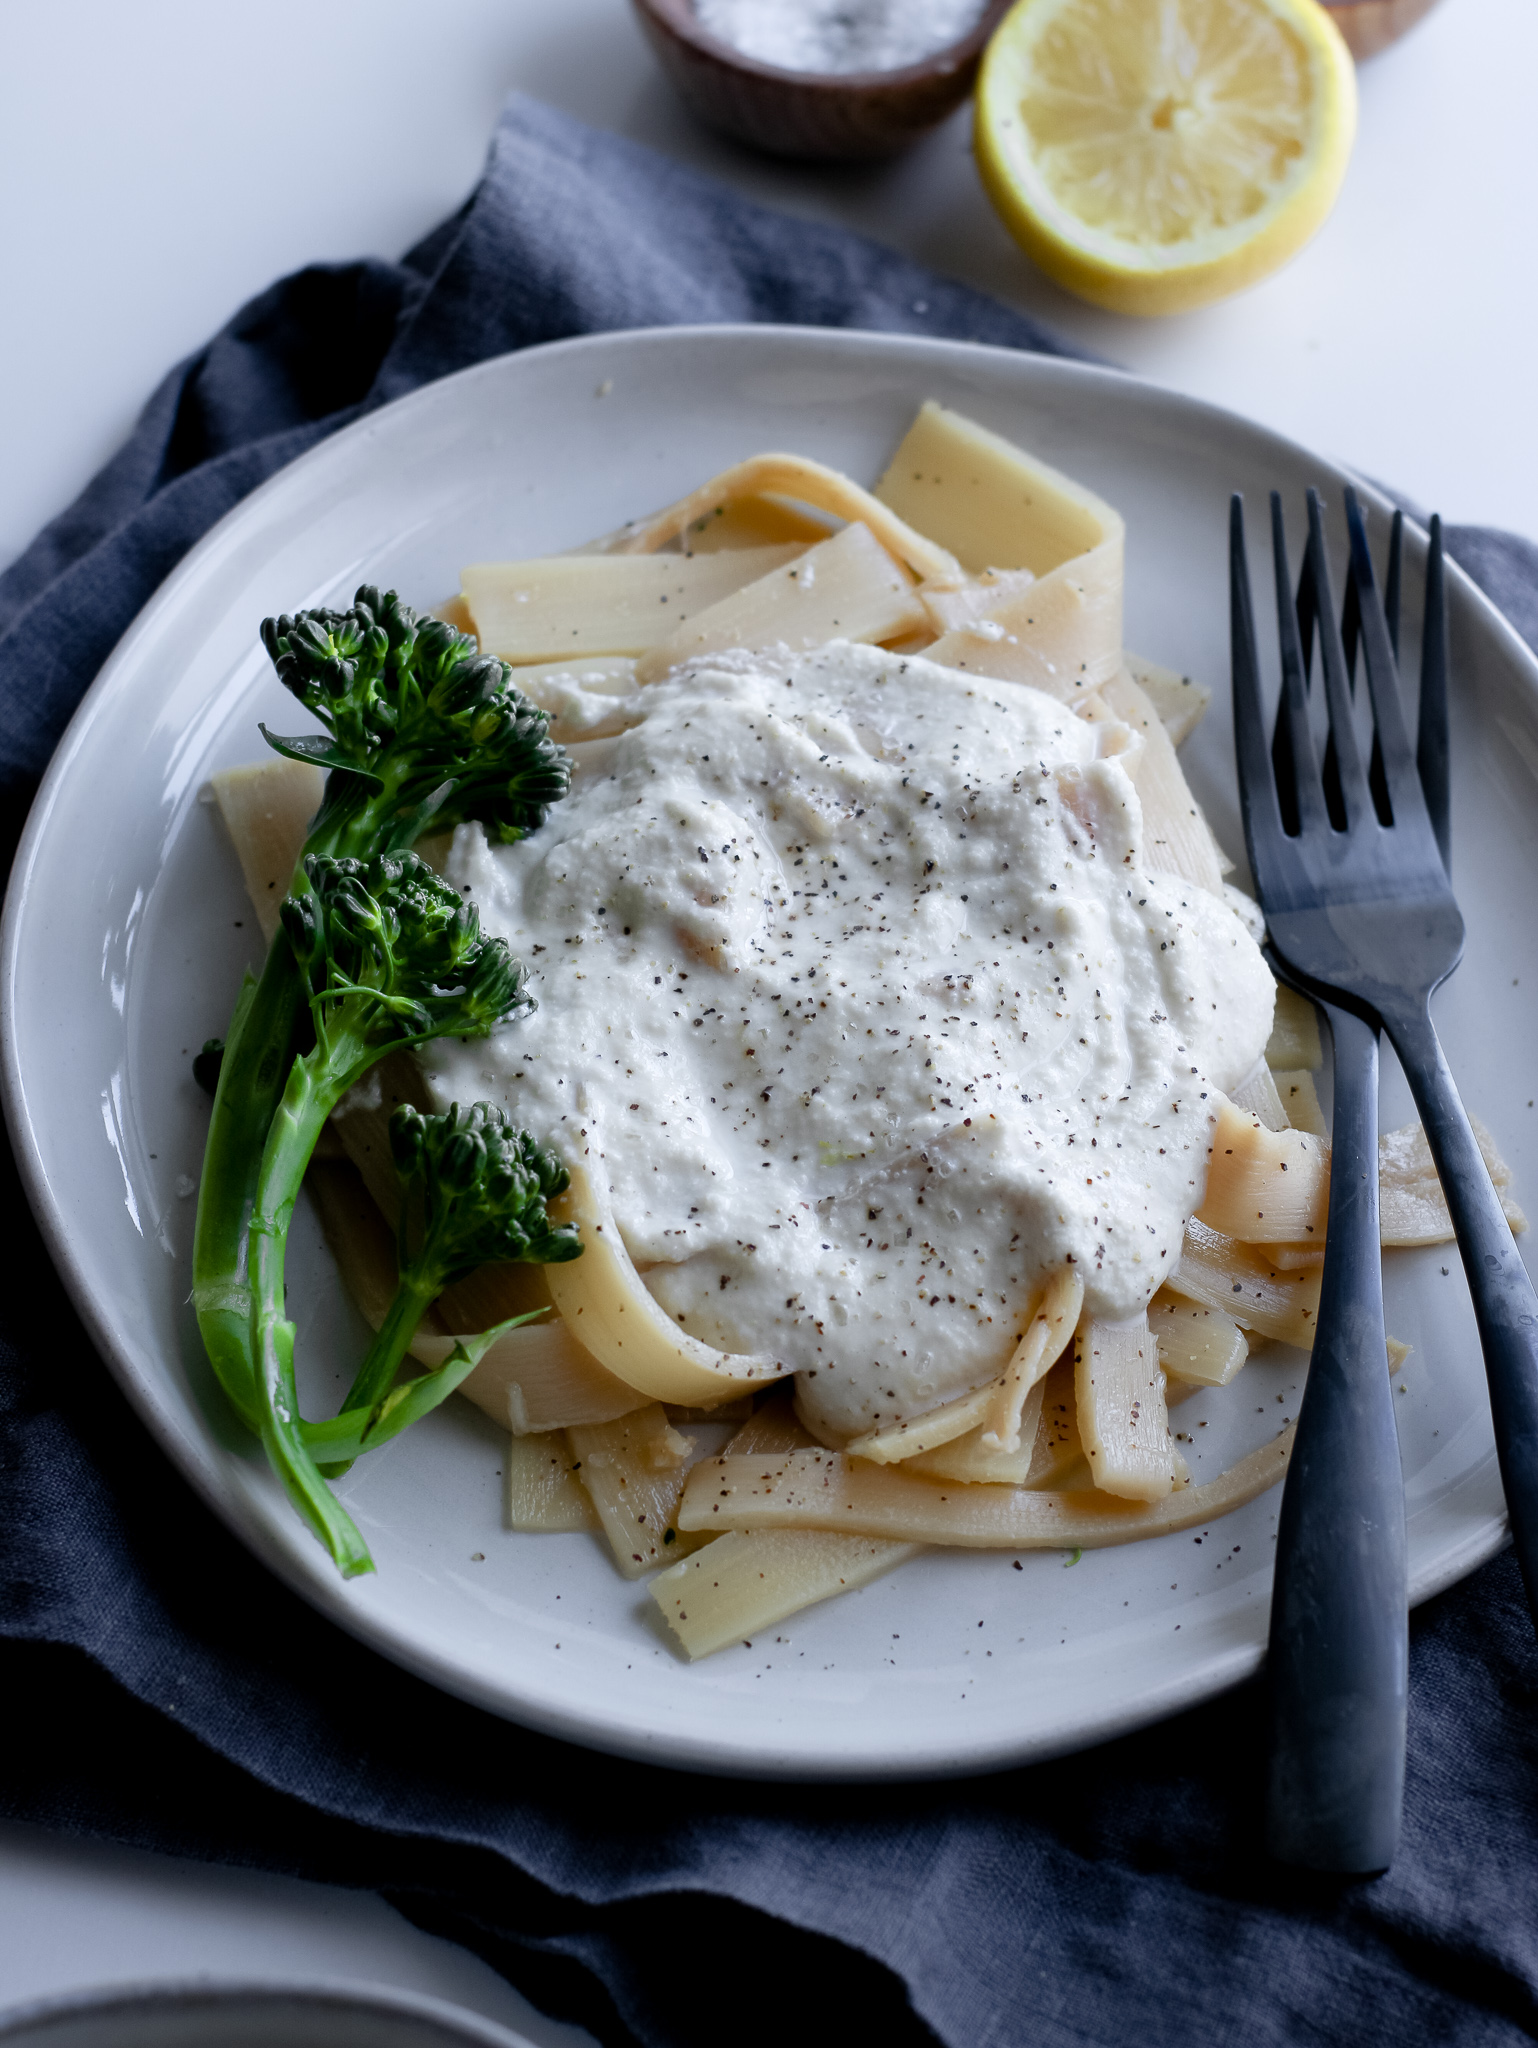 Gluten and dairy-free cashew alfredo sauce topped over some gluten-free pasta on a light gray plate and fresh steamed broccolini.